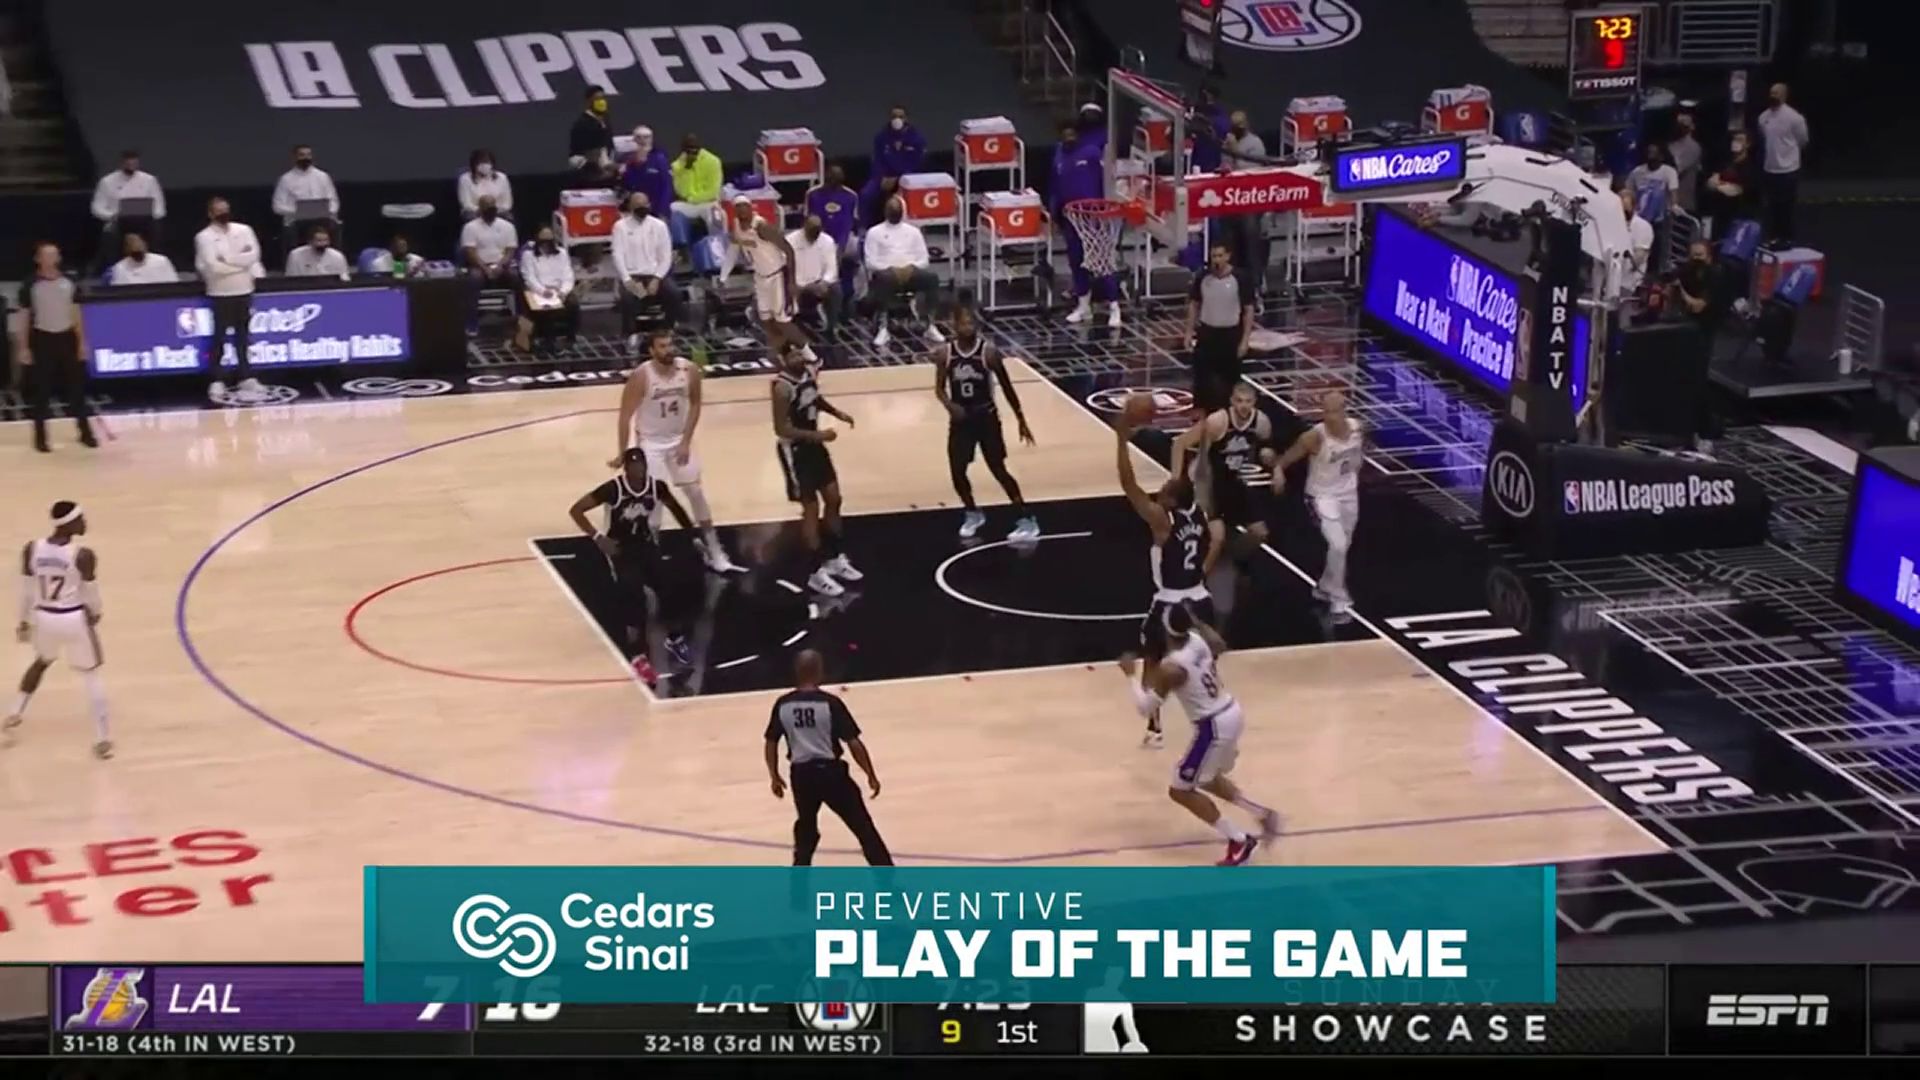 Cedars-Sinai Preventive Play of the Game | Clippers vs Lakers (4.4.21)